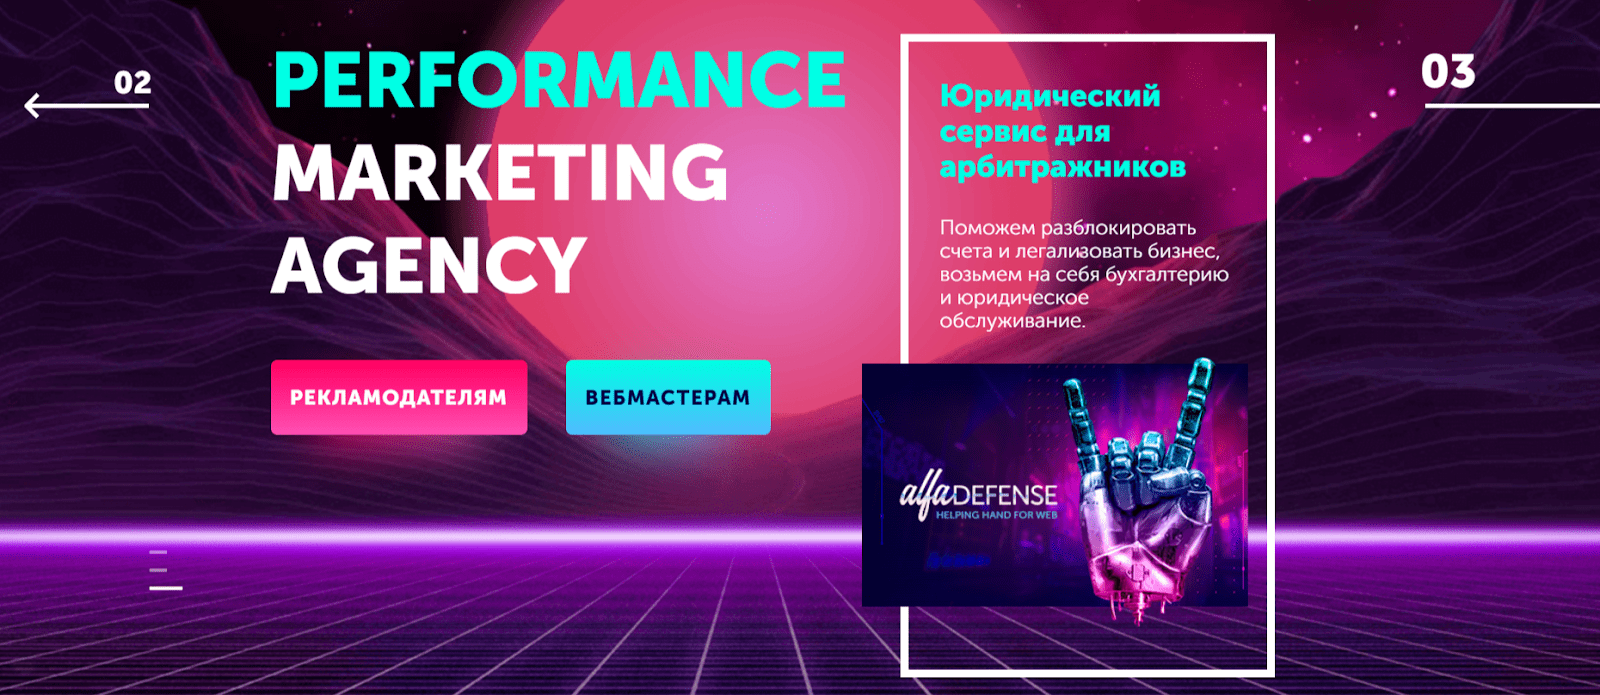 Alfaleads - Performance Marketing Agency